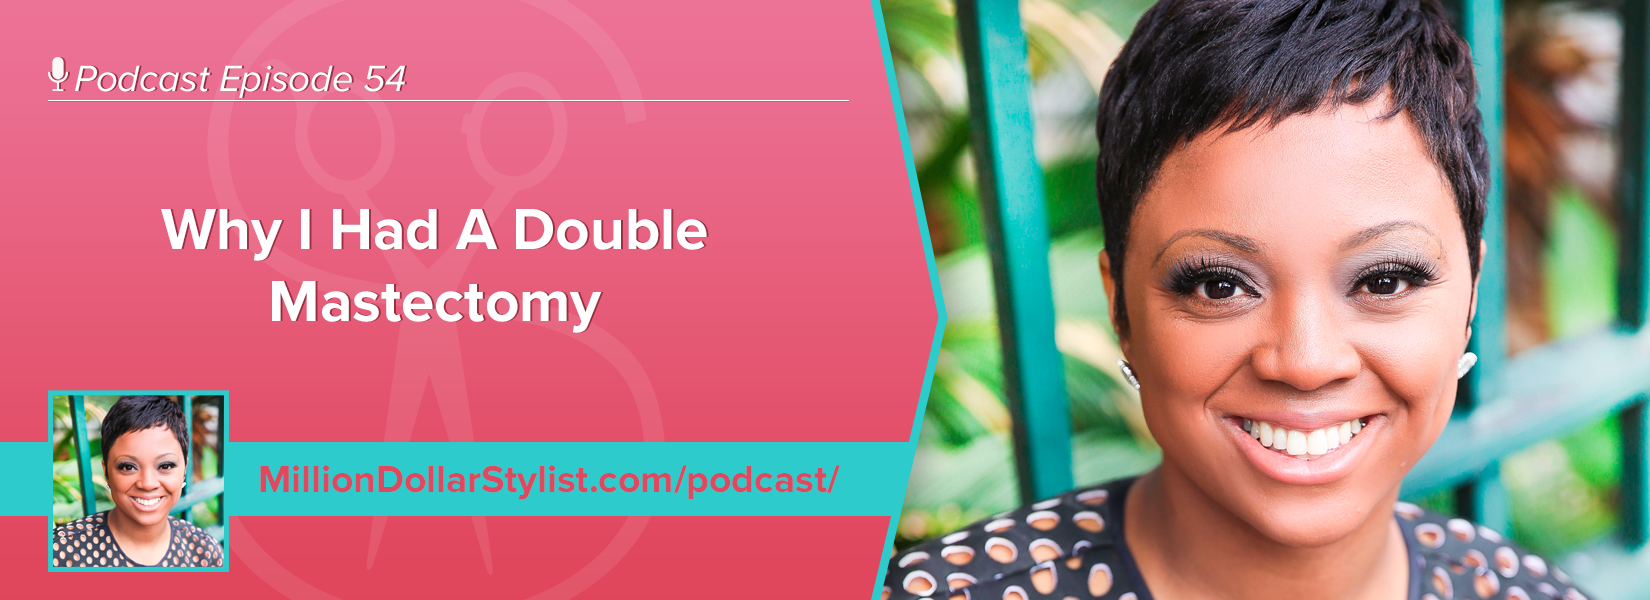 Episode 54 - Why I Had A Double Mastectomy 1